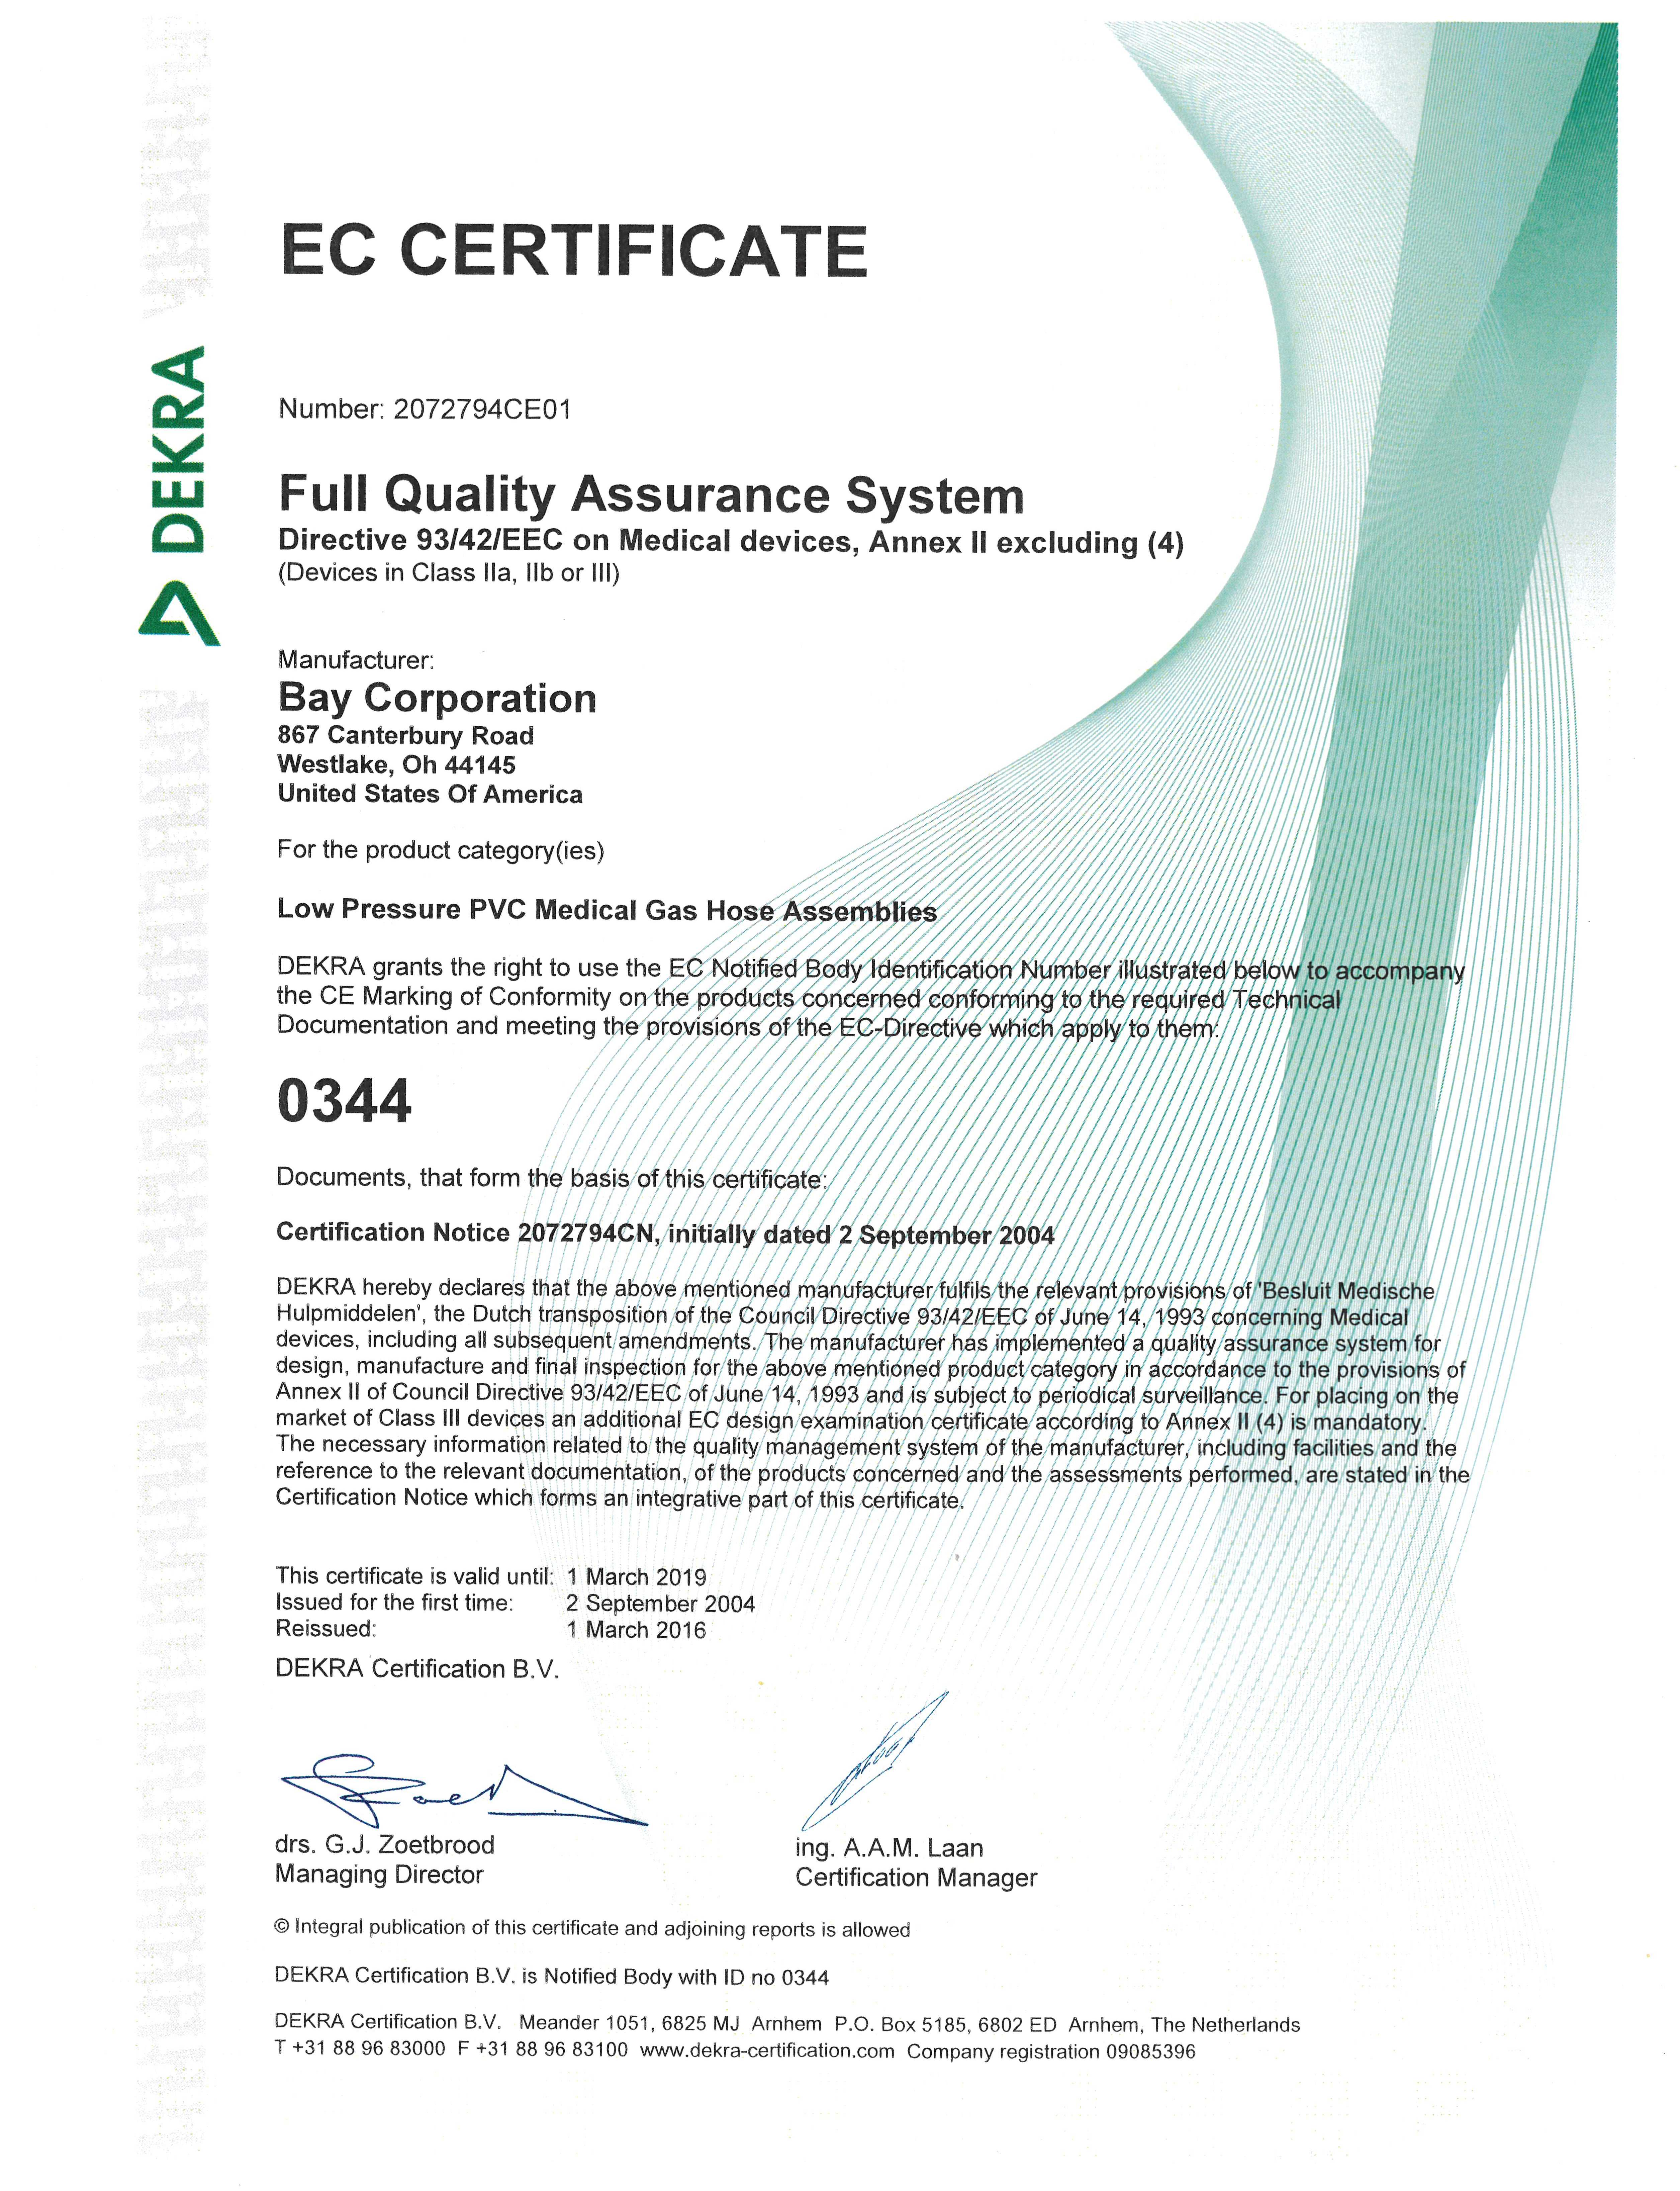 Ce Marking Of Conformity Medical Gas Fittings Bay Corporation